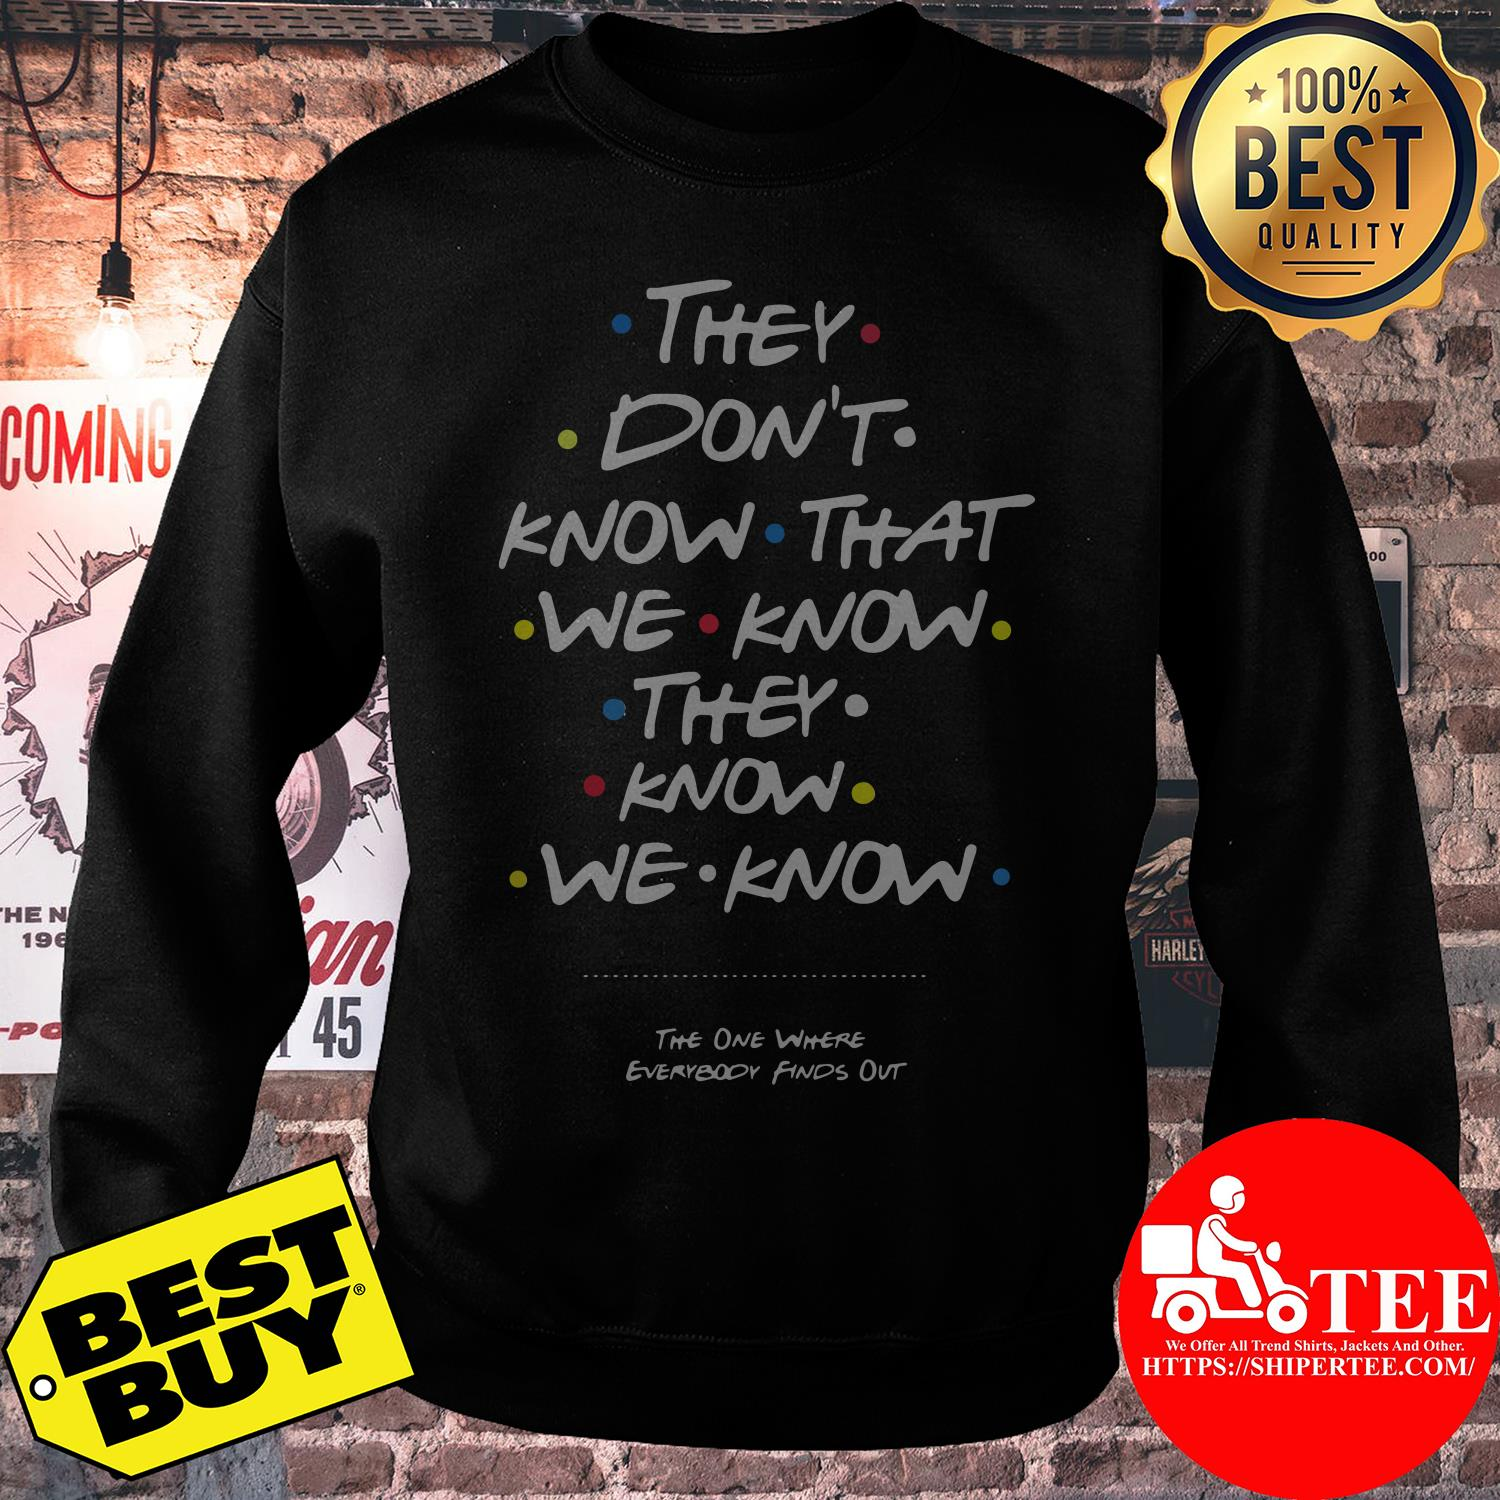 They Don't Know That We Know They Know We Know sweatshirt